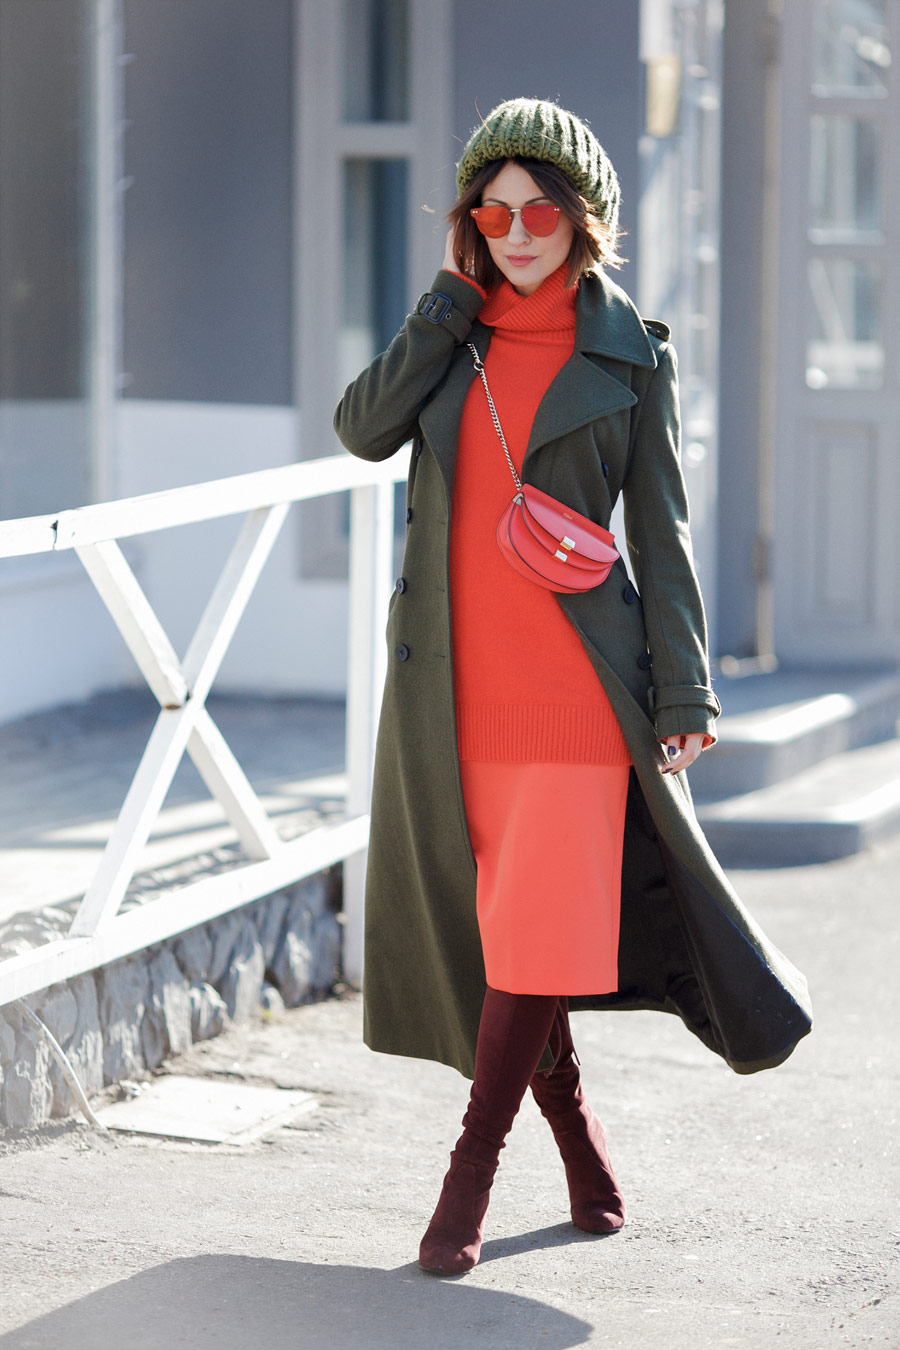 military coat outfit ideas, flare red color outfits,